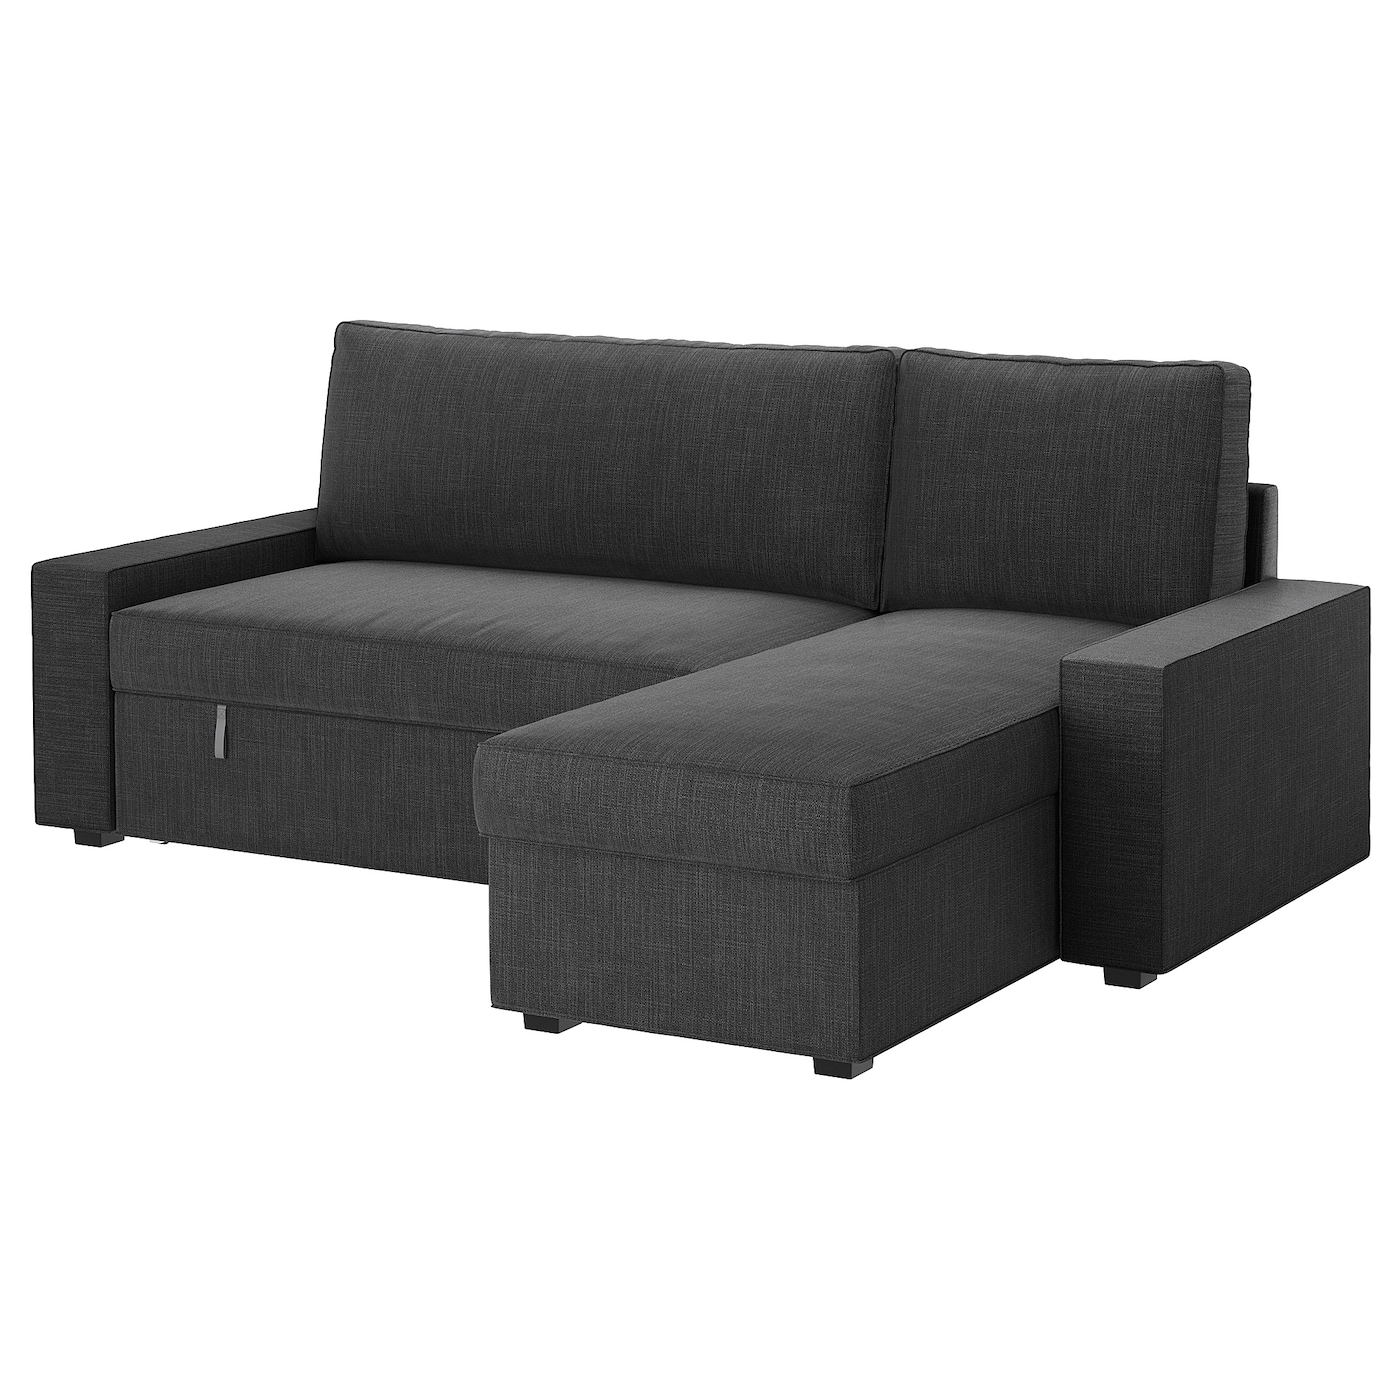 Vilasund cover sofa bed with chaise longue hillared anthracite ikea - Chaise longue sofa bed ...